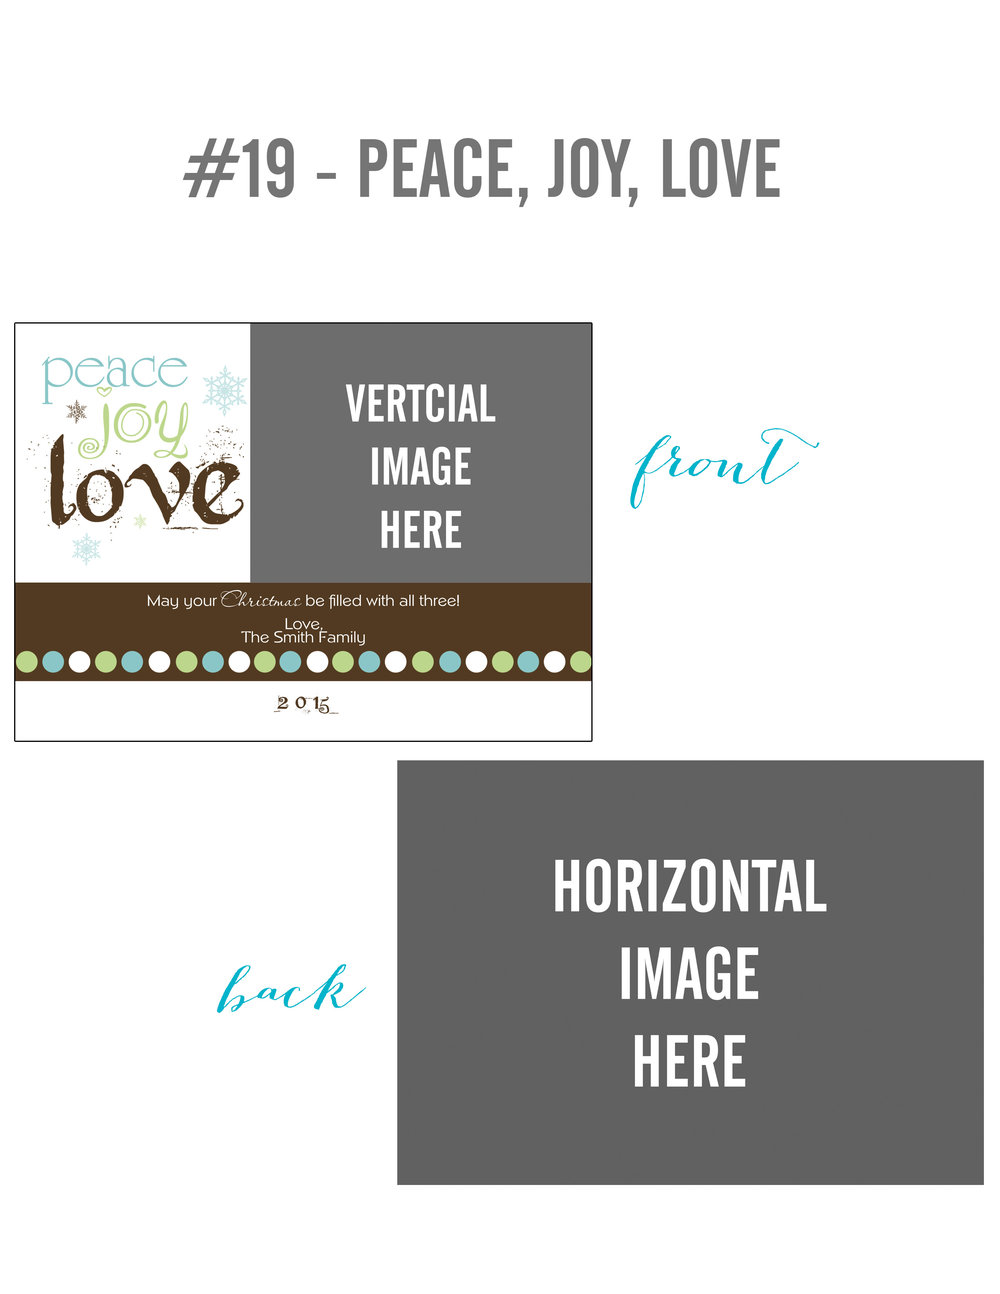 19-PEACE, LOVE, JOY.jpg